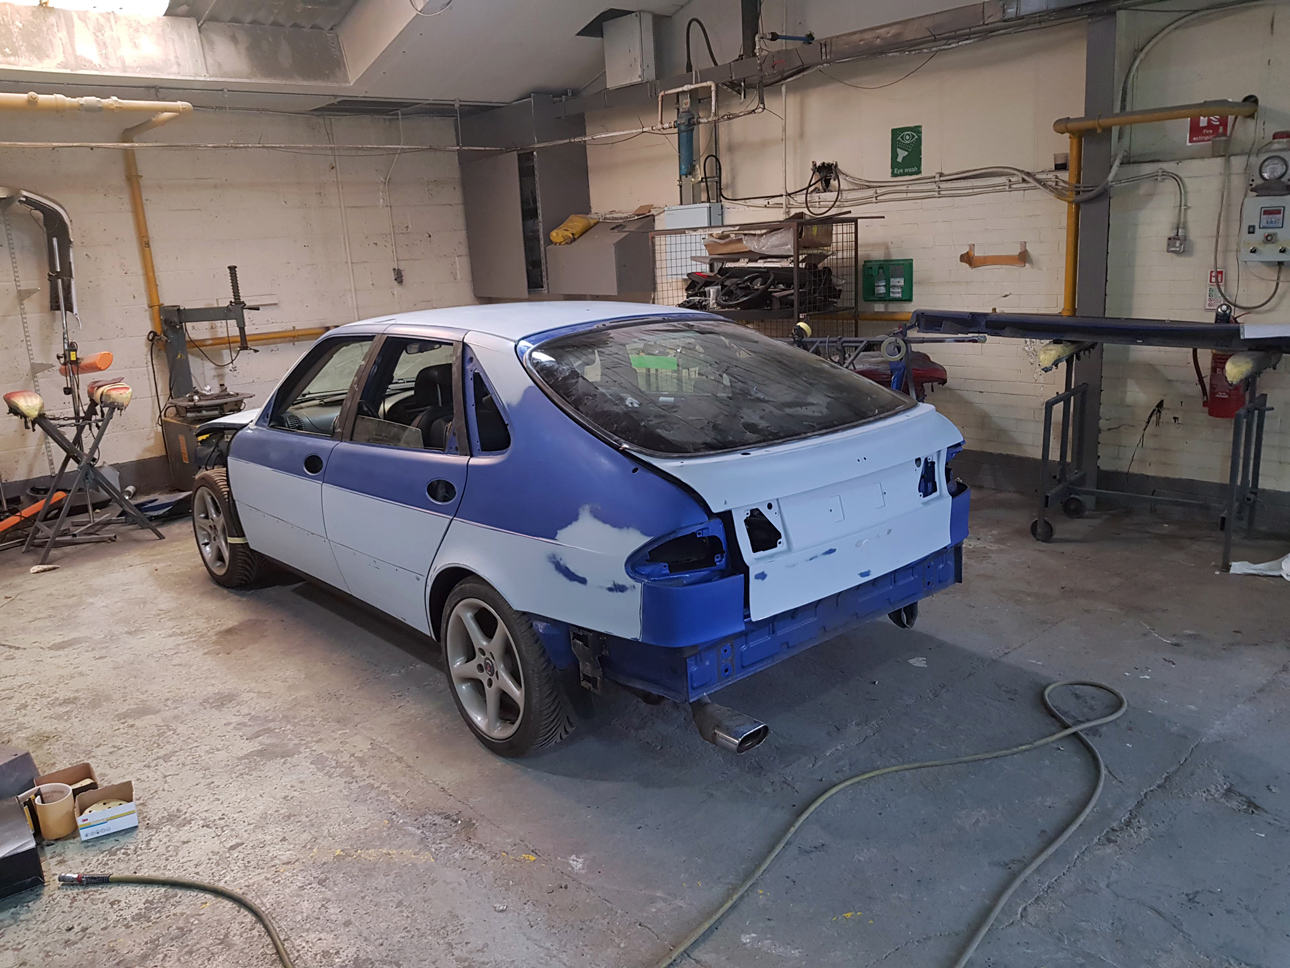 Saab 9-3 kaross i garage